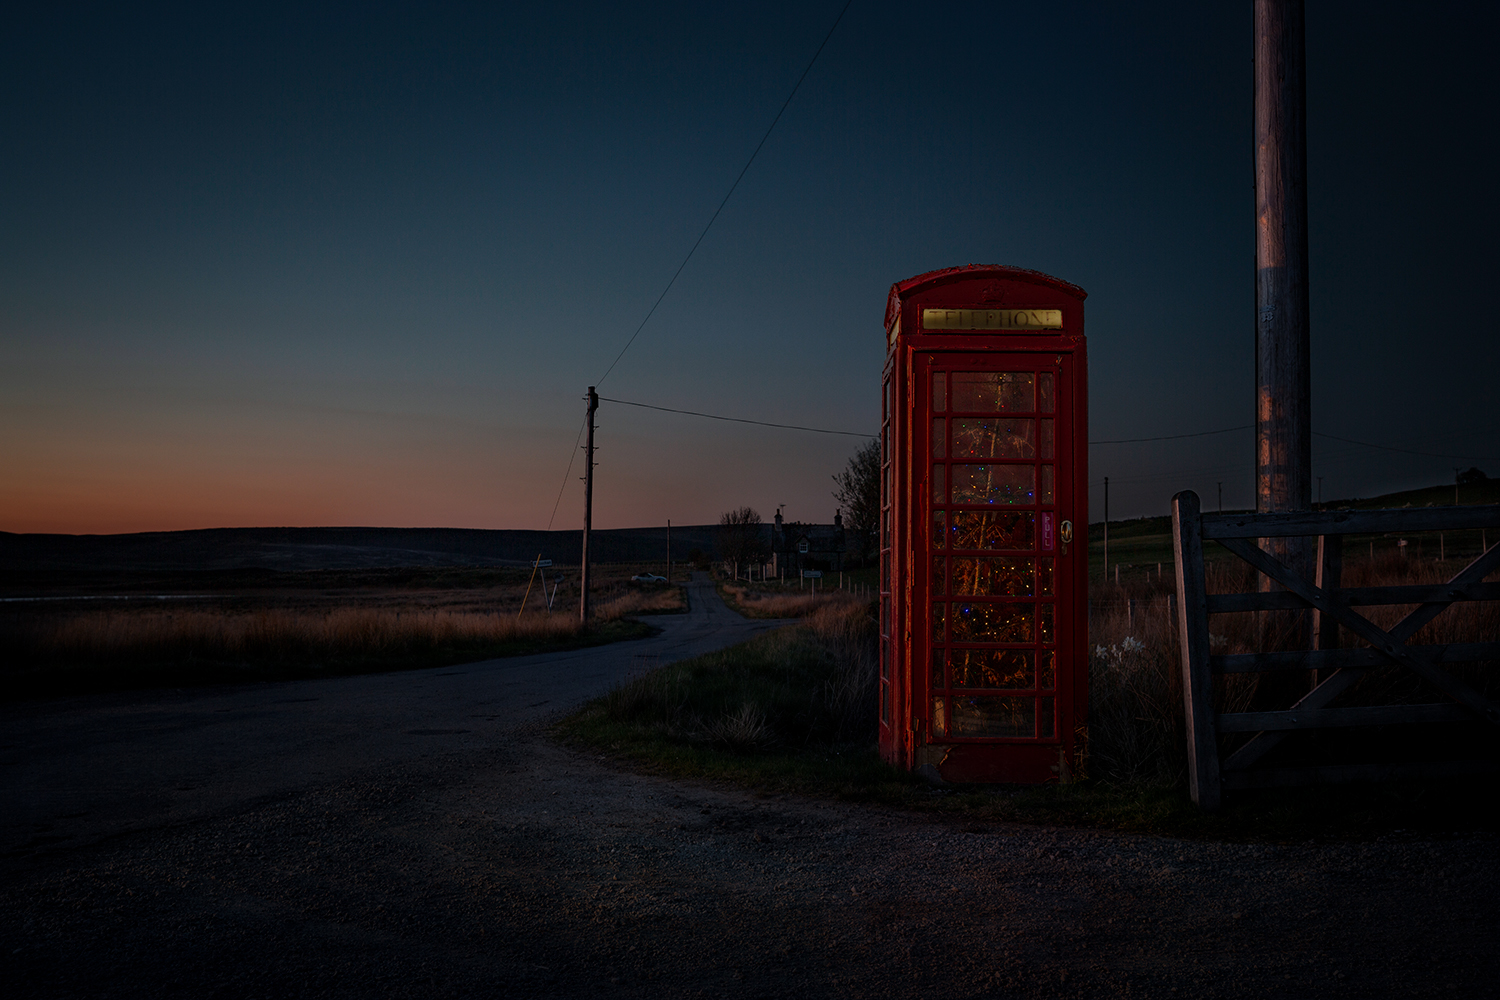 Red BT phone box with Christmas lights . Sutherland, Scotland.